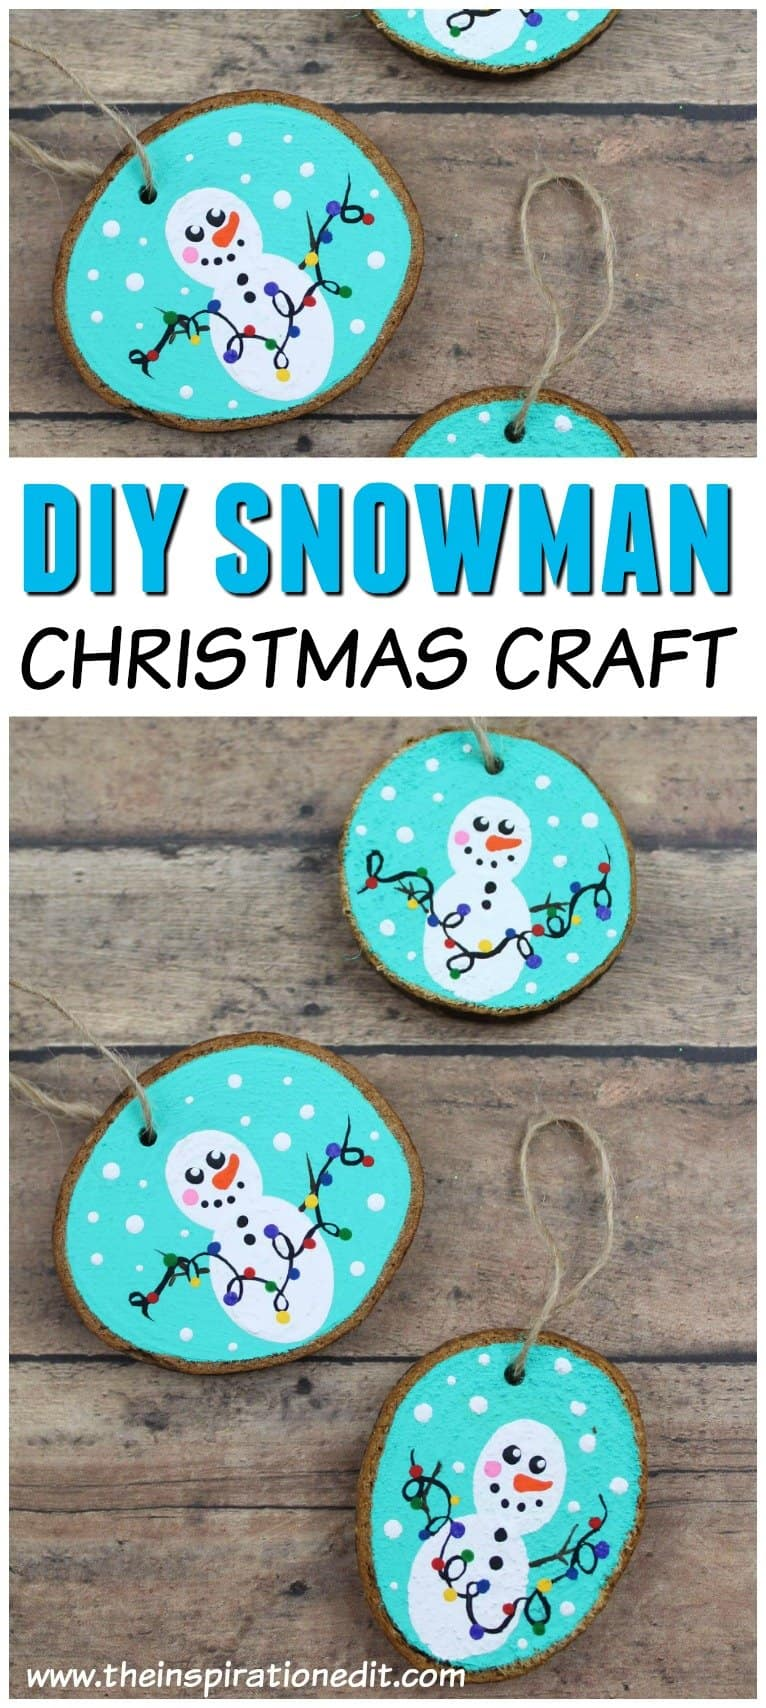 Snowman Ornaments for Christmas · The Inspiration Edit